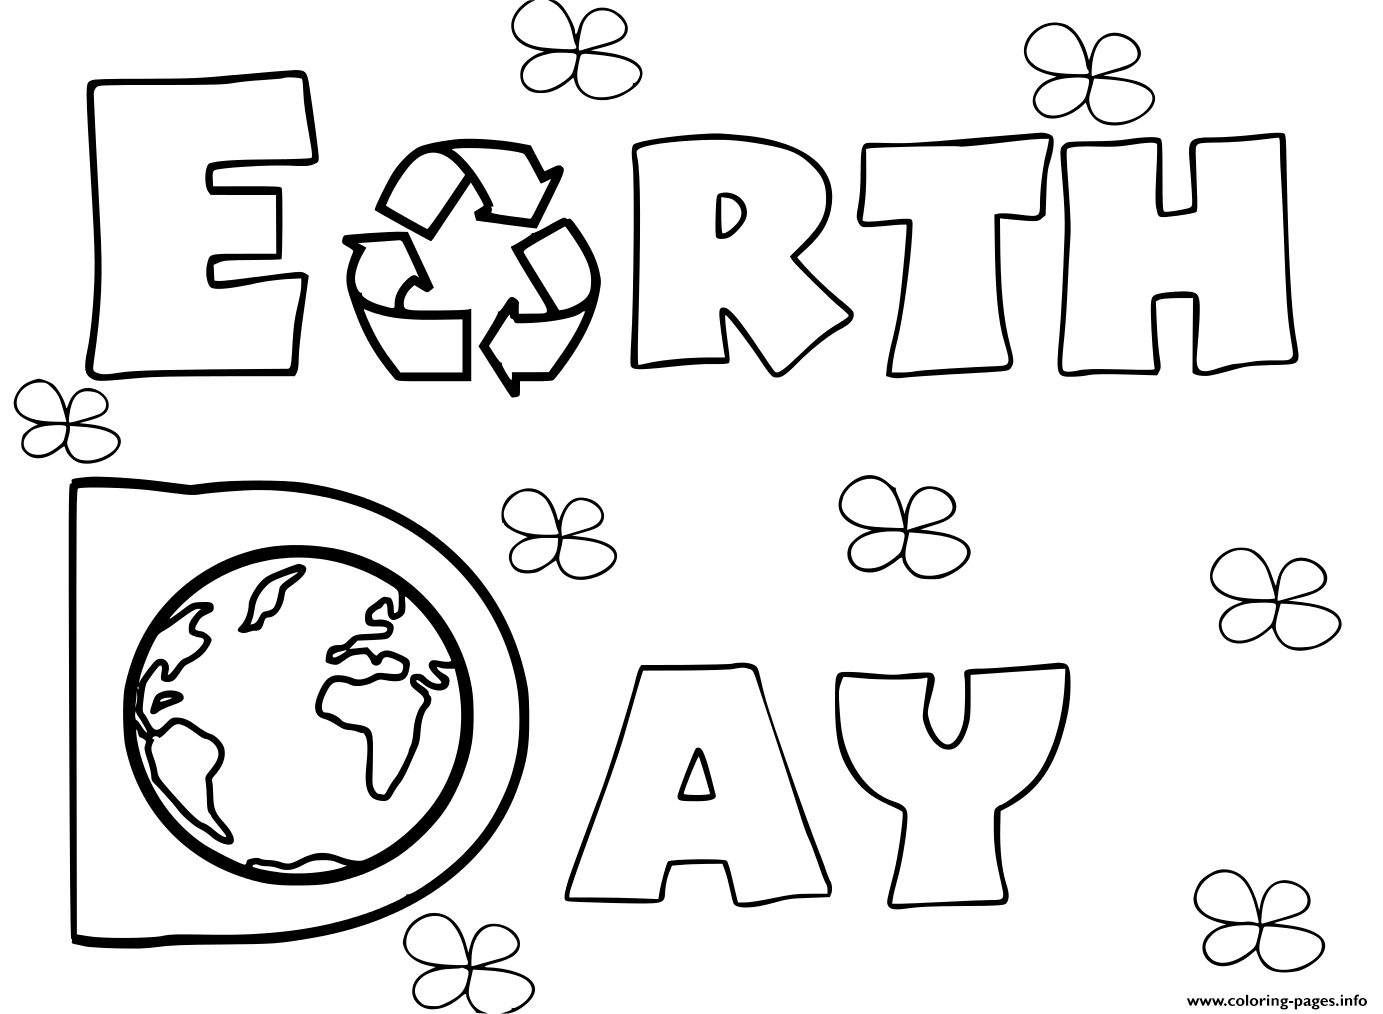 Earth Day Coloring Pages Earth Day Activities Coloring Pages Printable